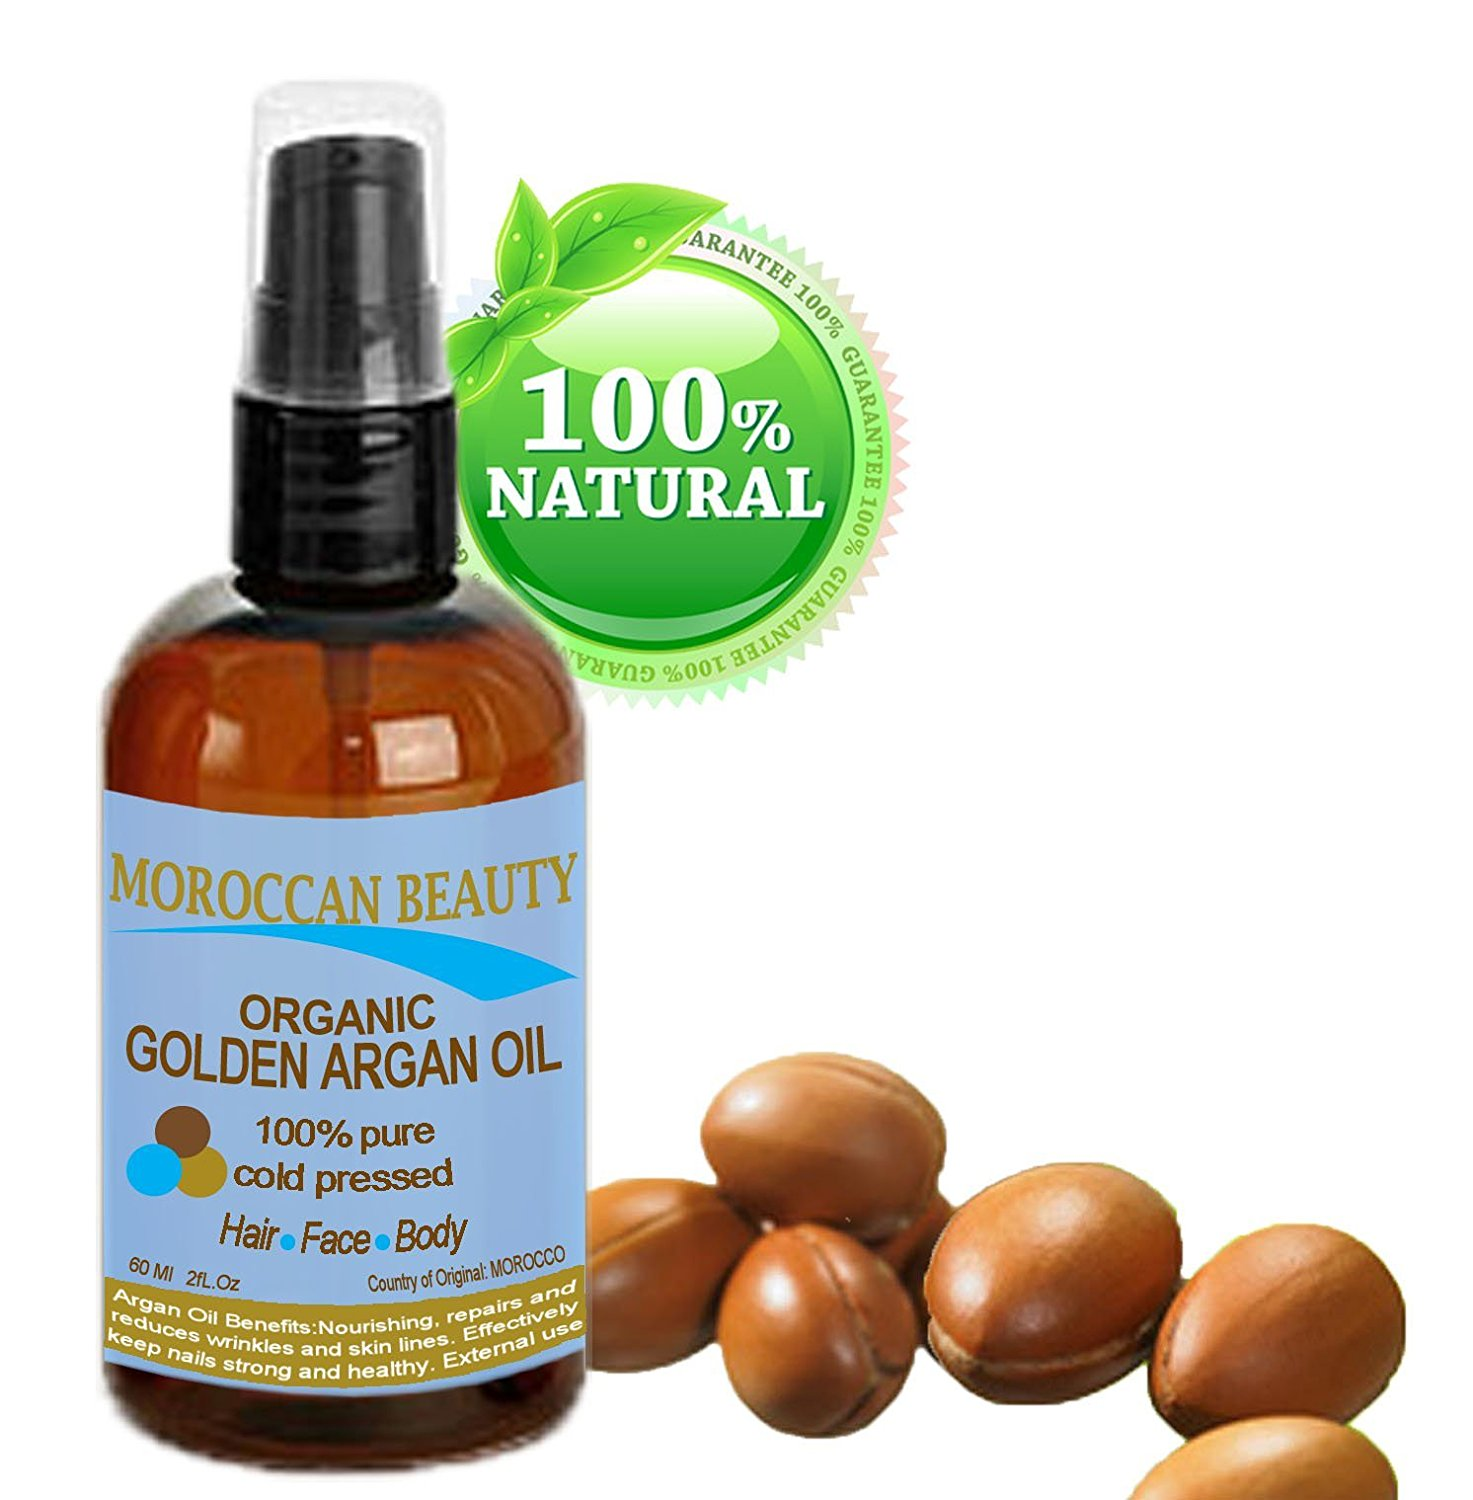 Moroccan Beauty Golden Argan Oil, 100% Pure, Cold Pressed, Certified Organic - Professional Use 2 Oz-60ml